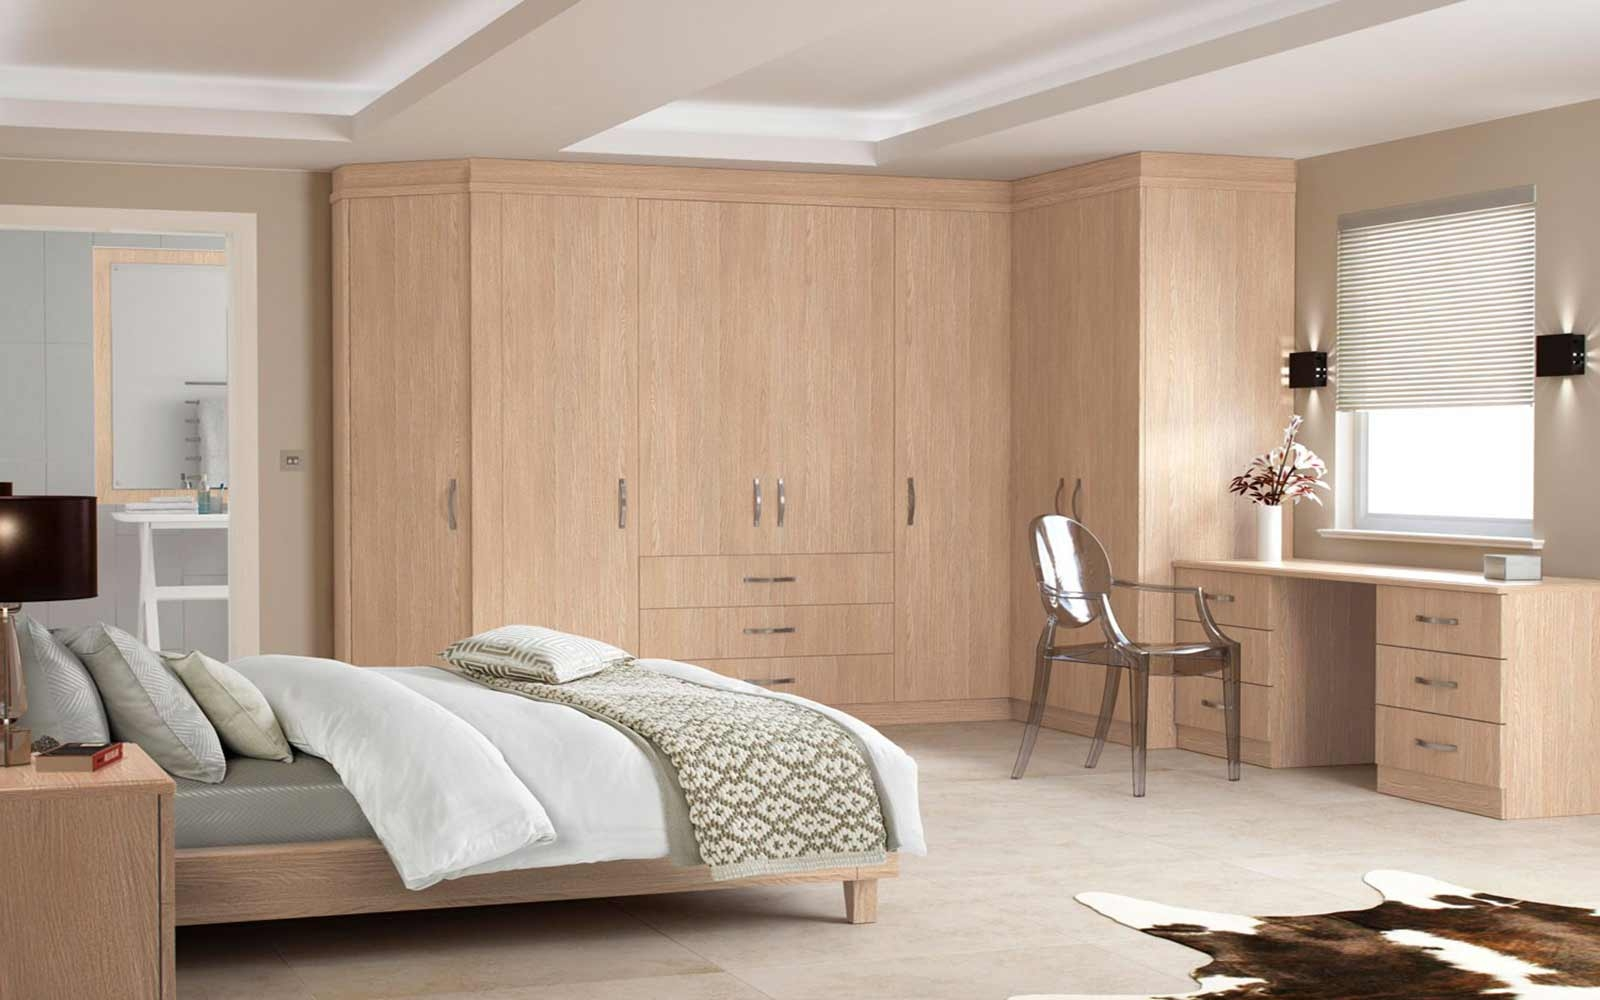 Bedroom Bespoke Built In Fitted Wardrobe Mirrored Dark Wood Throughout Solid Wood Fitted Wardrobes (Image 2 of 15)